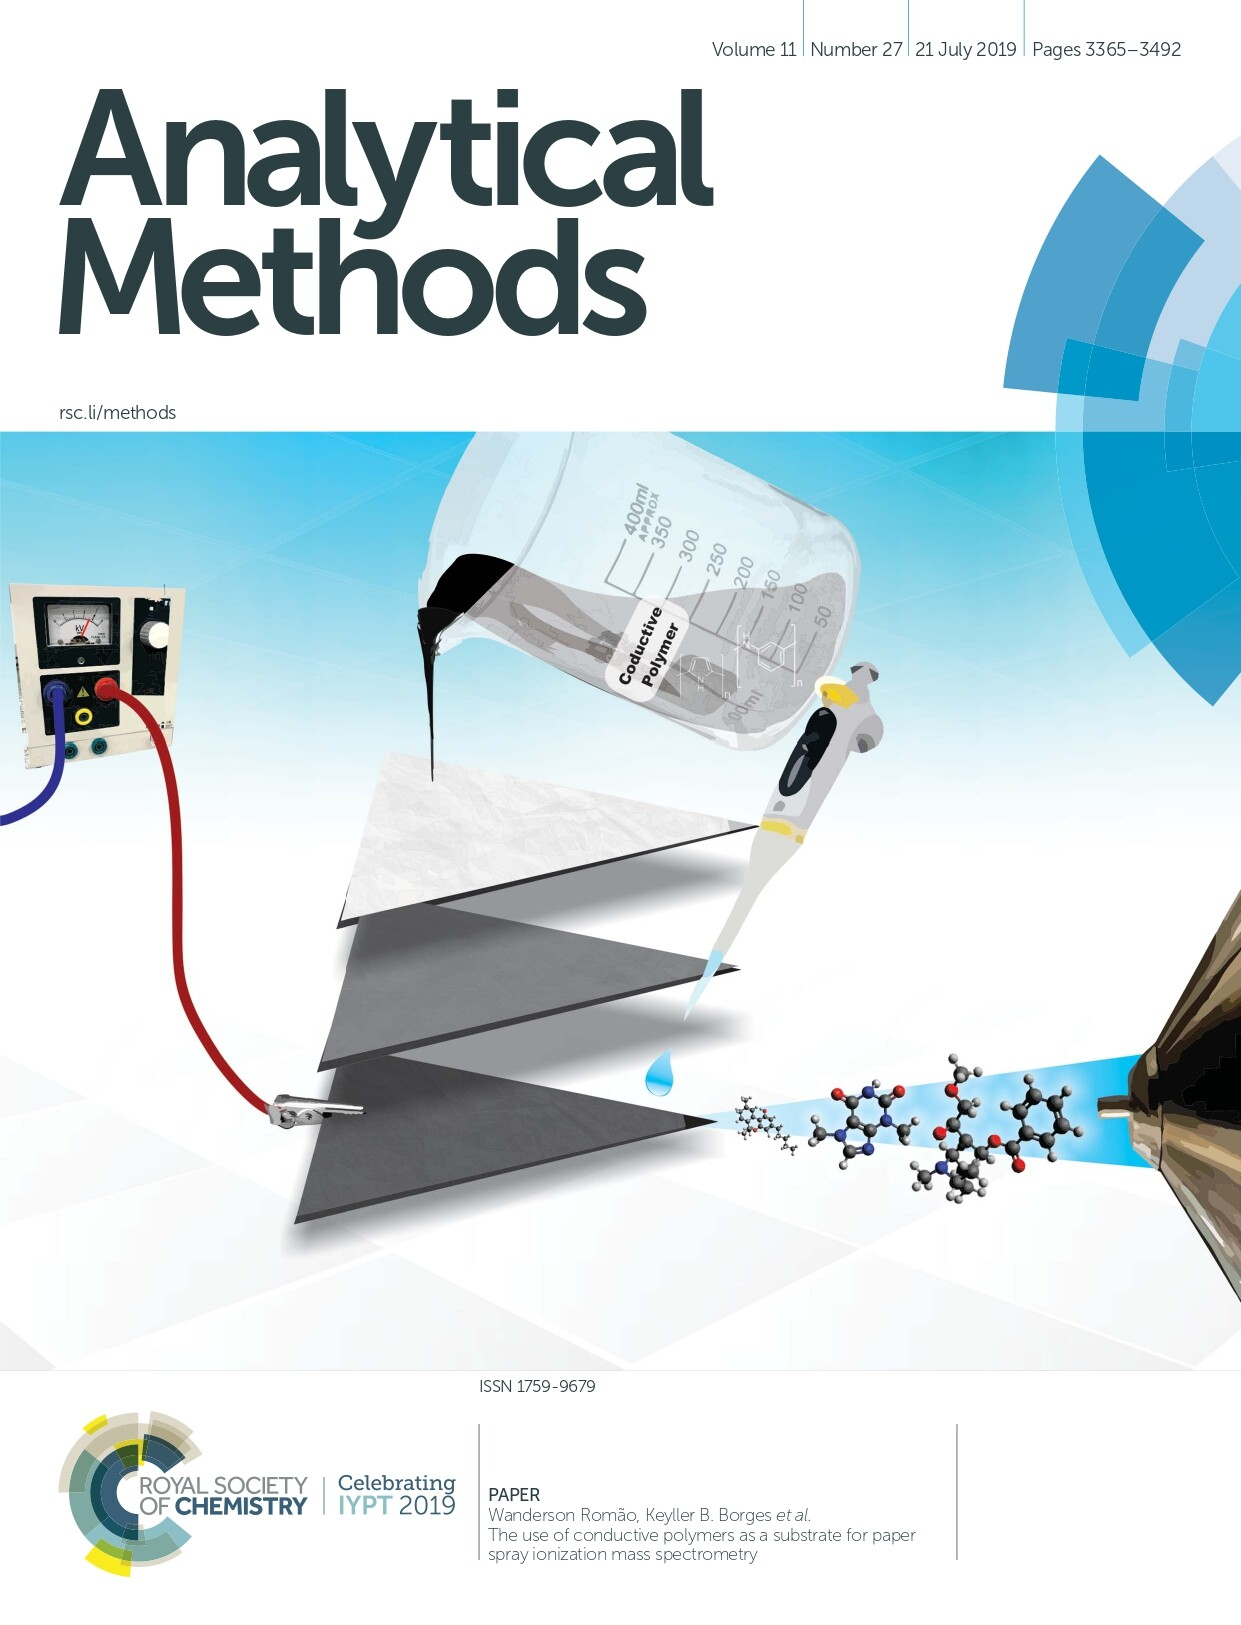 PAPERWanderson Romão, Keyller B. Borges et al.The use of conductive polymers as a substrate for paperspray ionization mass spectrometry